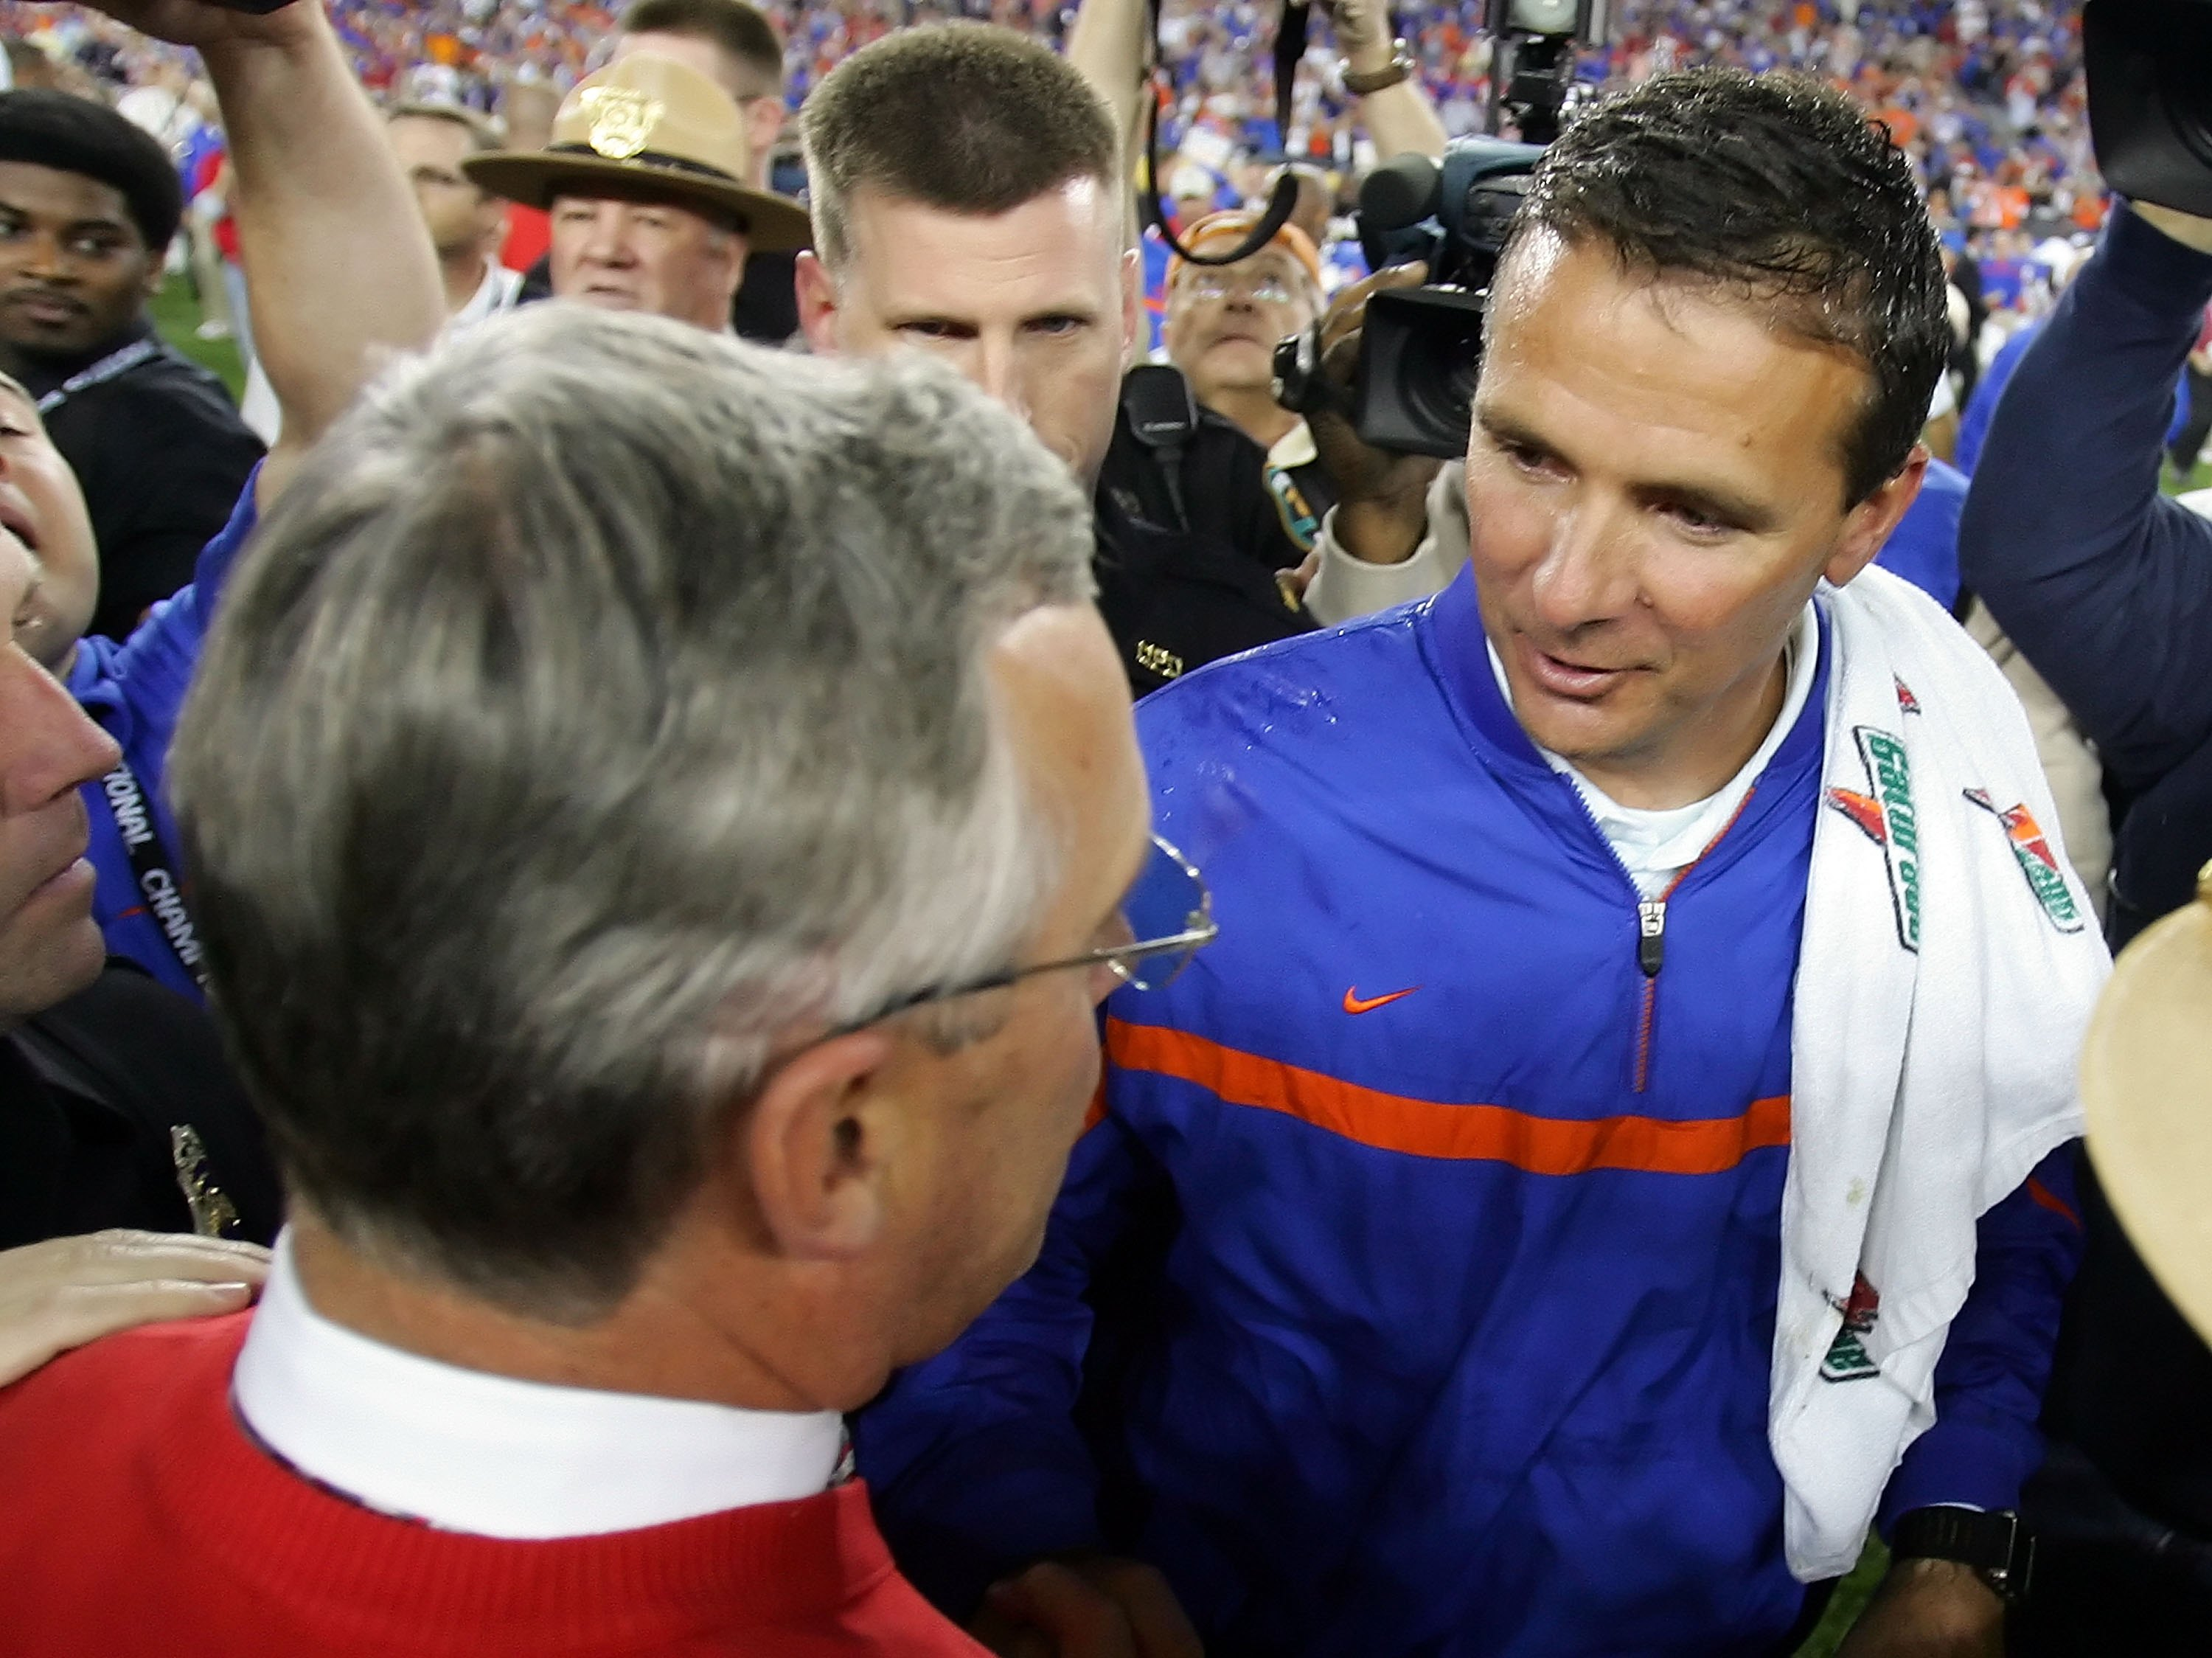 GLENDALE, AZ - JANUARY 08:  (R-L) Head coach Urban Meyer of the Florida Gators shakes hands with head coach Jim Tressel of the Ohio State Buckeyes after the 2007 Tostitos BCS National Championship Game at the University of Phoenix Stadium on January 8, 20